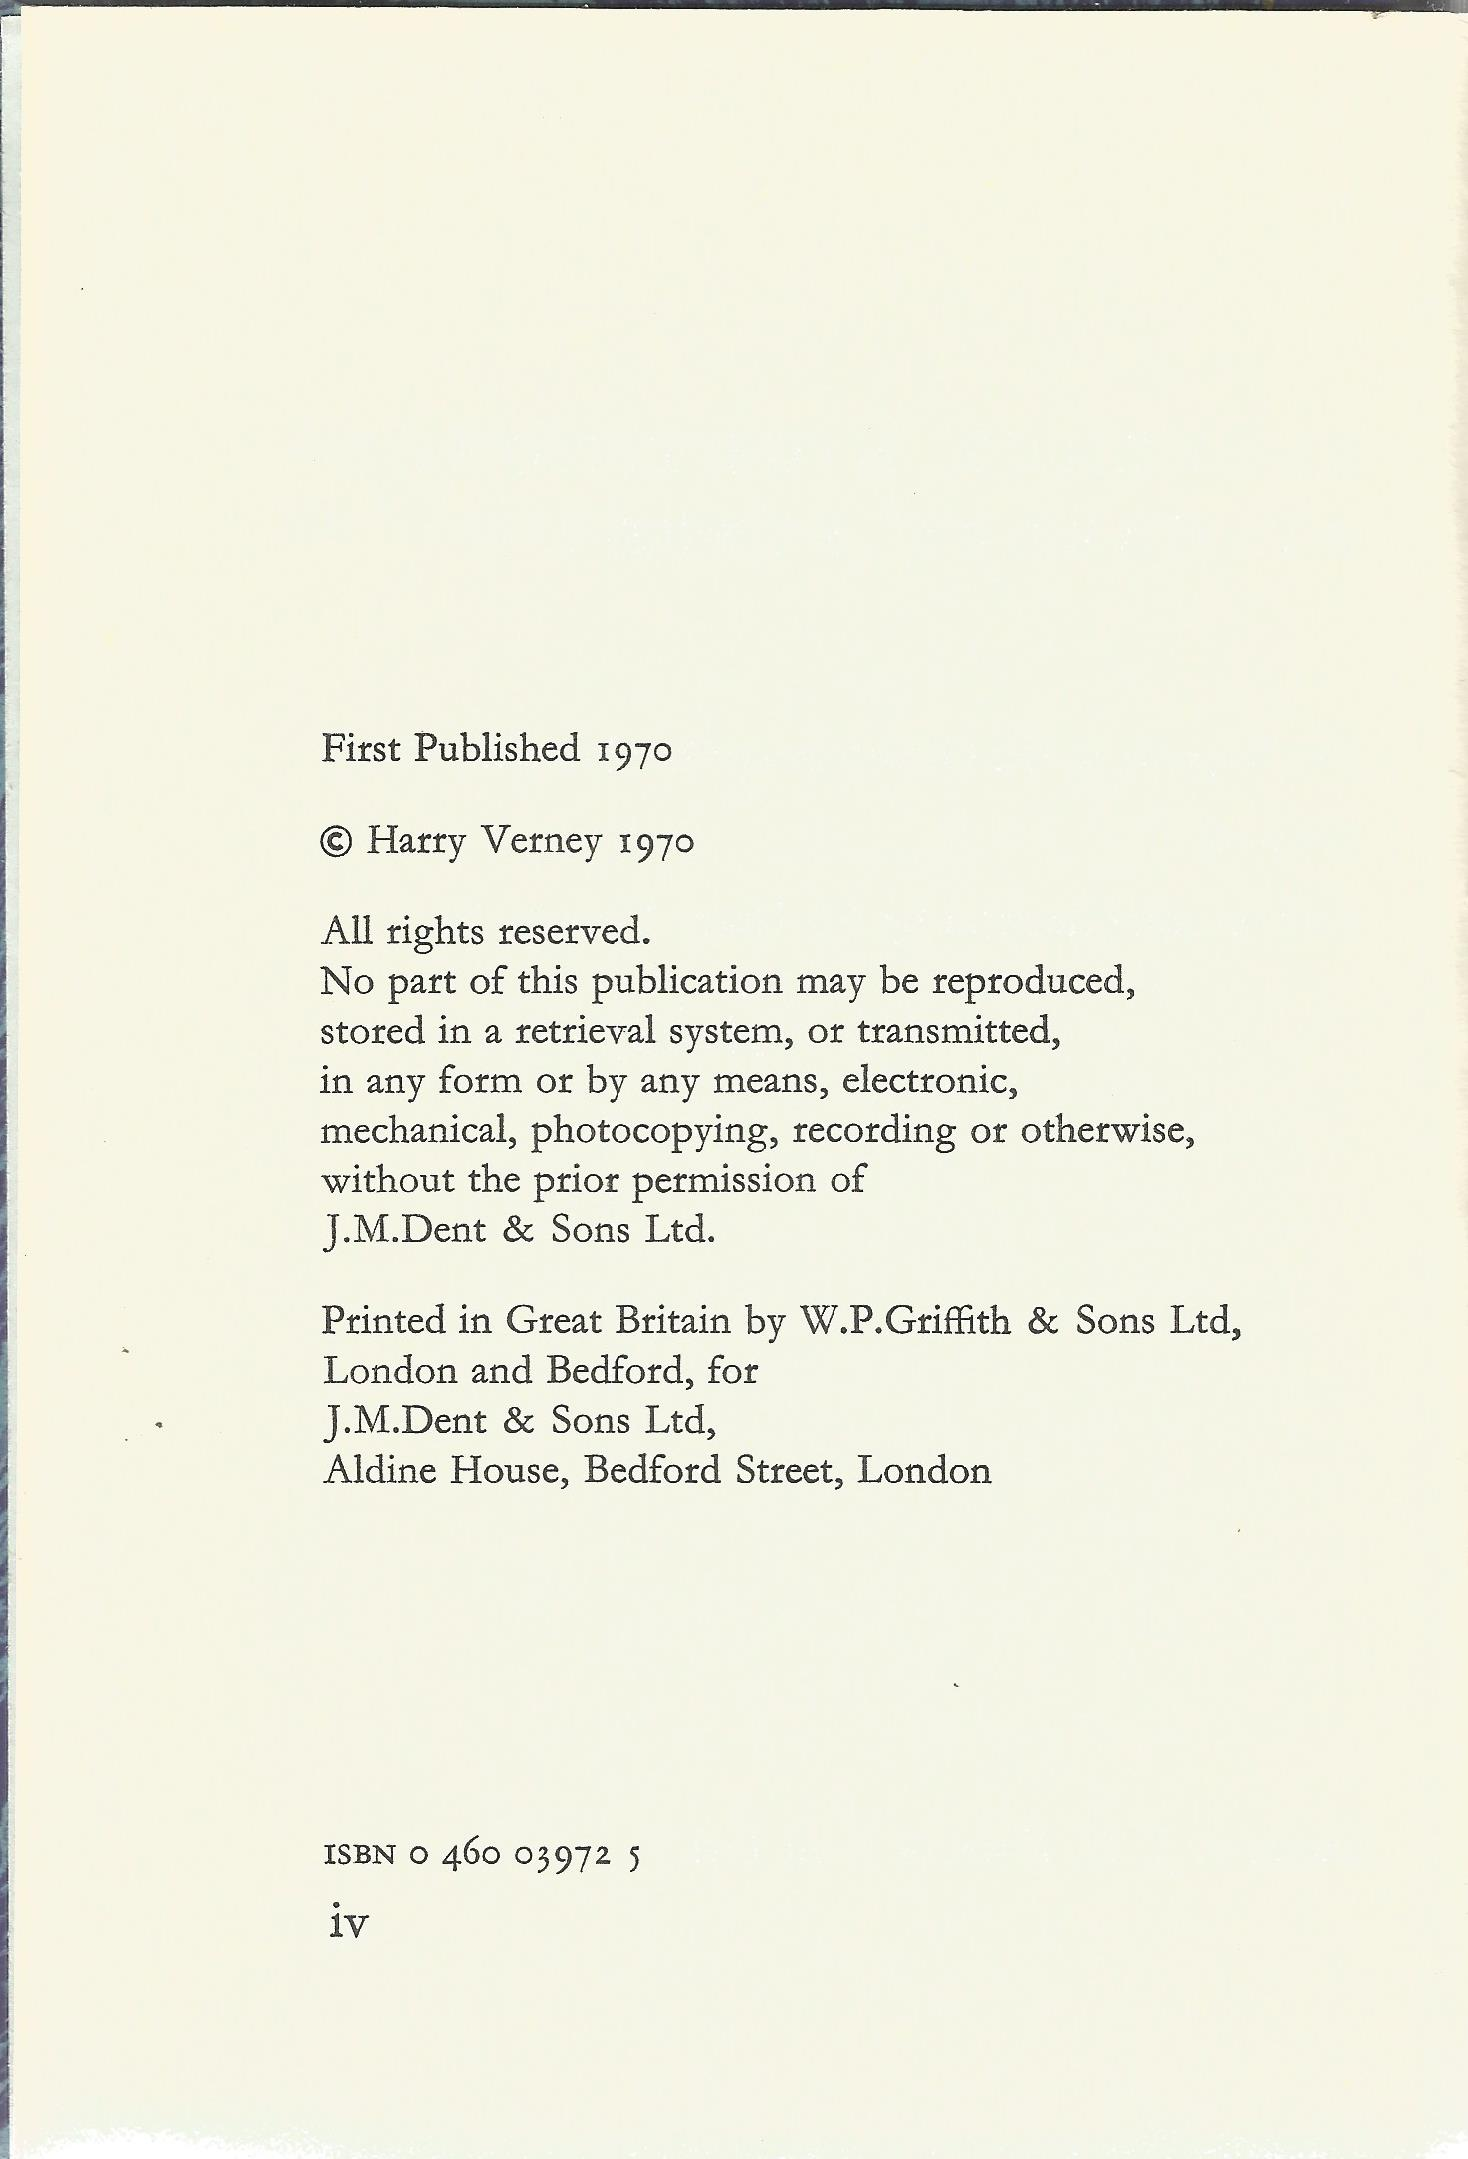 Signed Hardback Book Florence Nightingale at Harley Street Introduction & Signed by Sir Harry Verney - Image 3 of 3